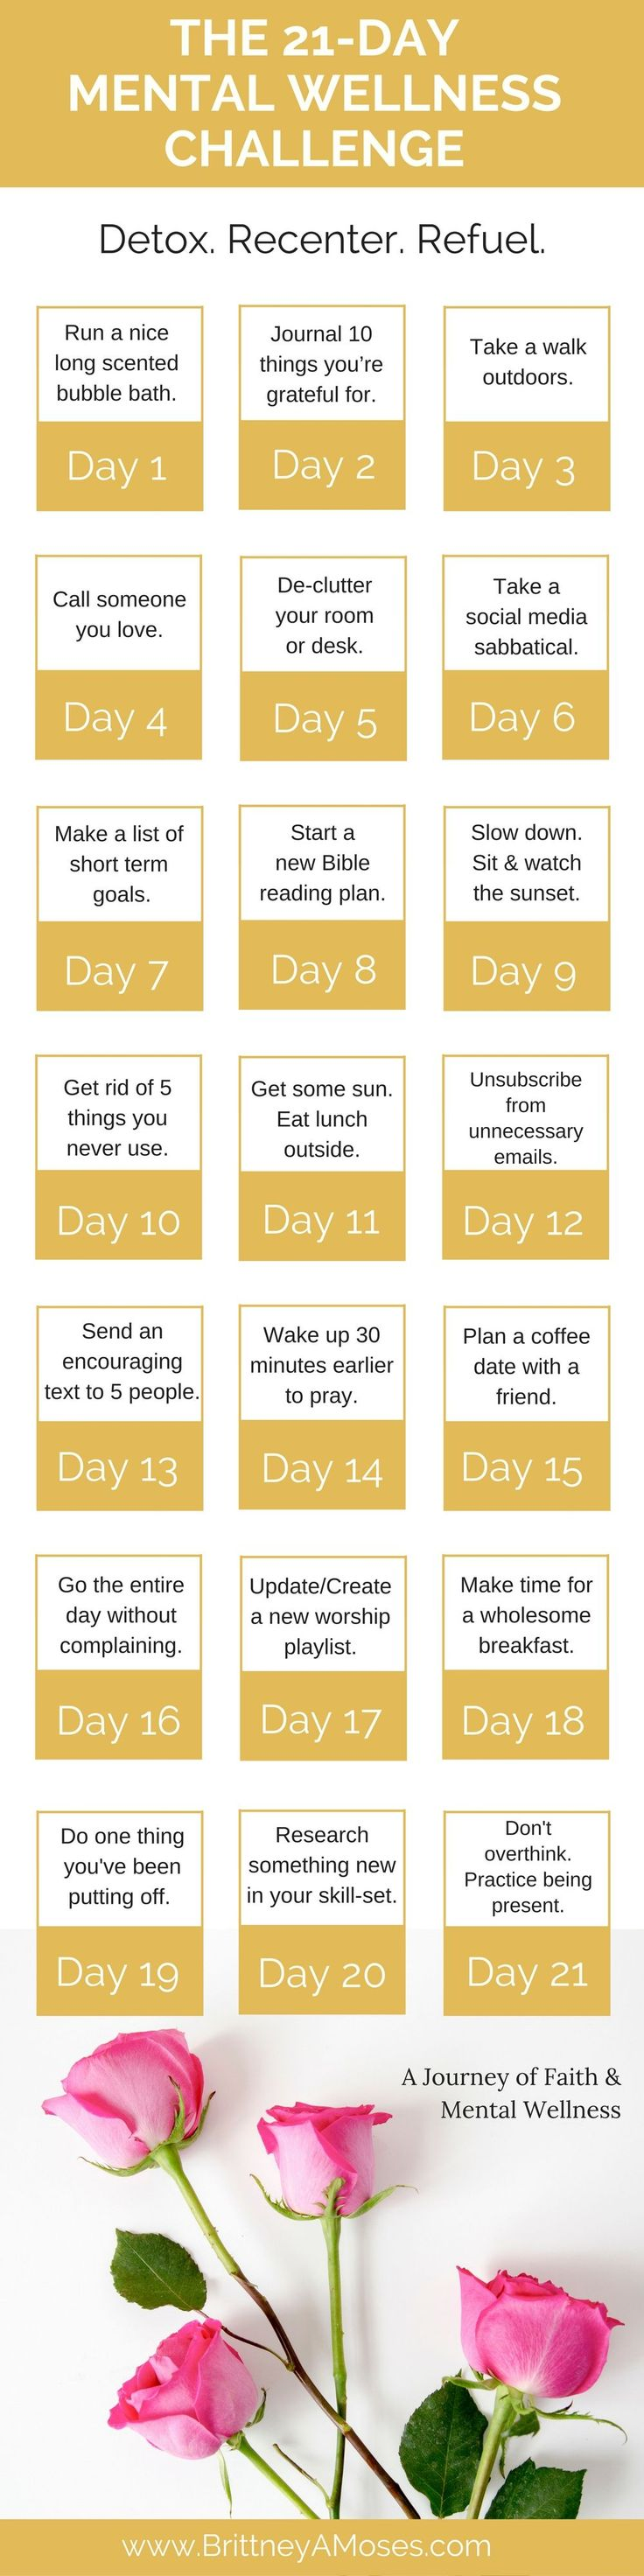 21-Day Mental Wellness Challenge! -Brittney Moses